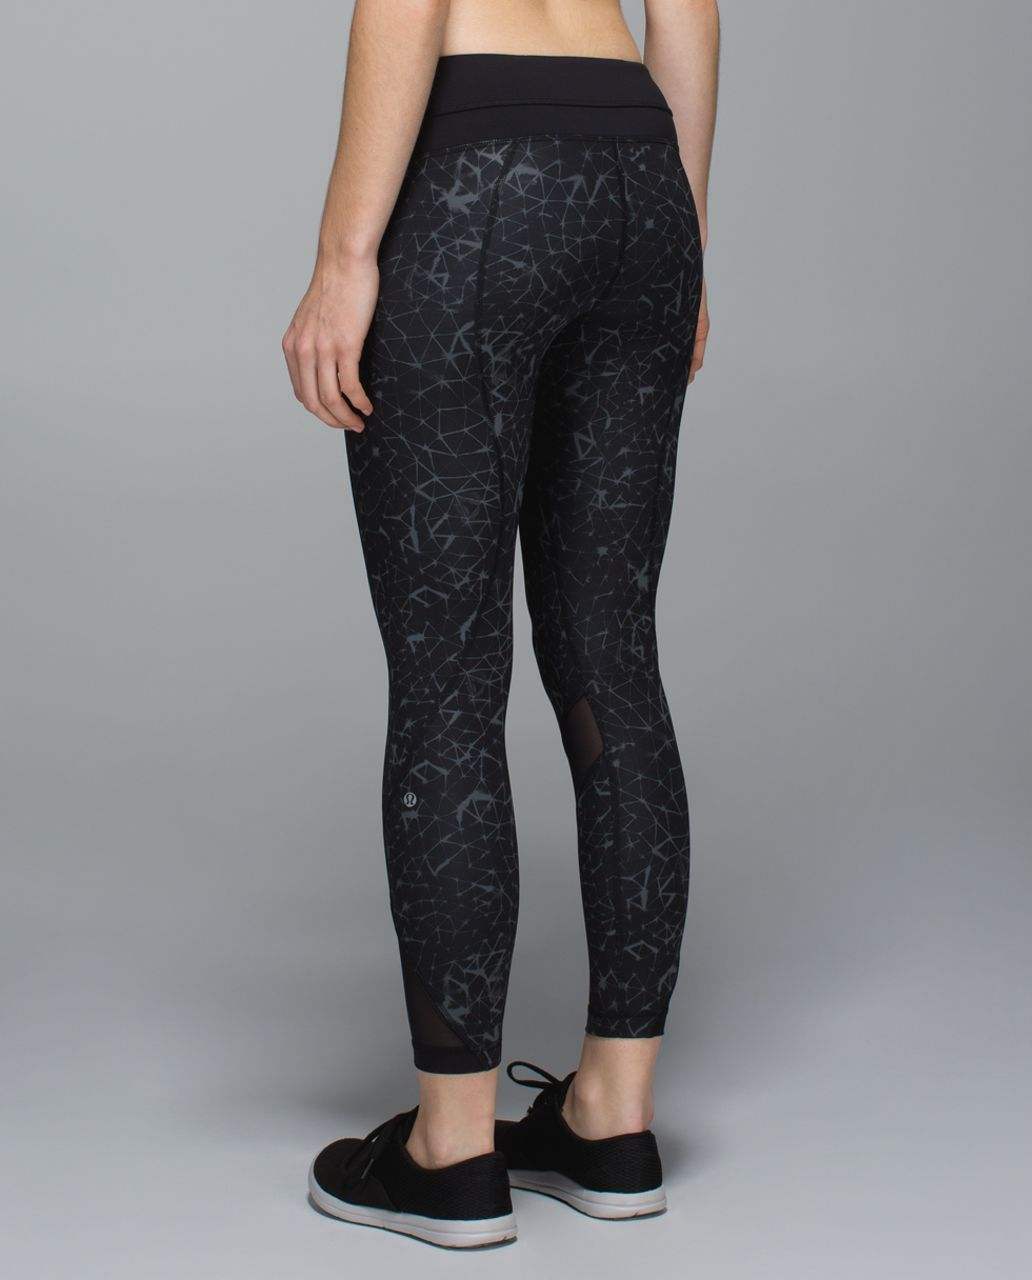 b5d7da826 Lululemon Inspire Tight II  Full-On Luxtreme (Mesh) - Star Crushed Coal